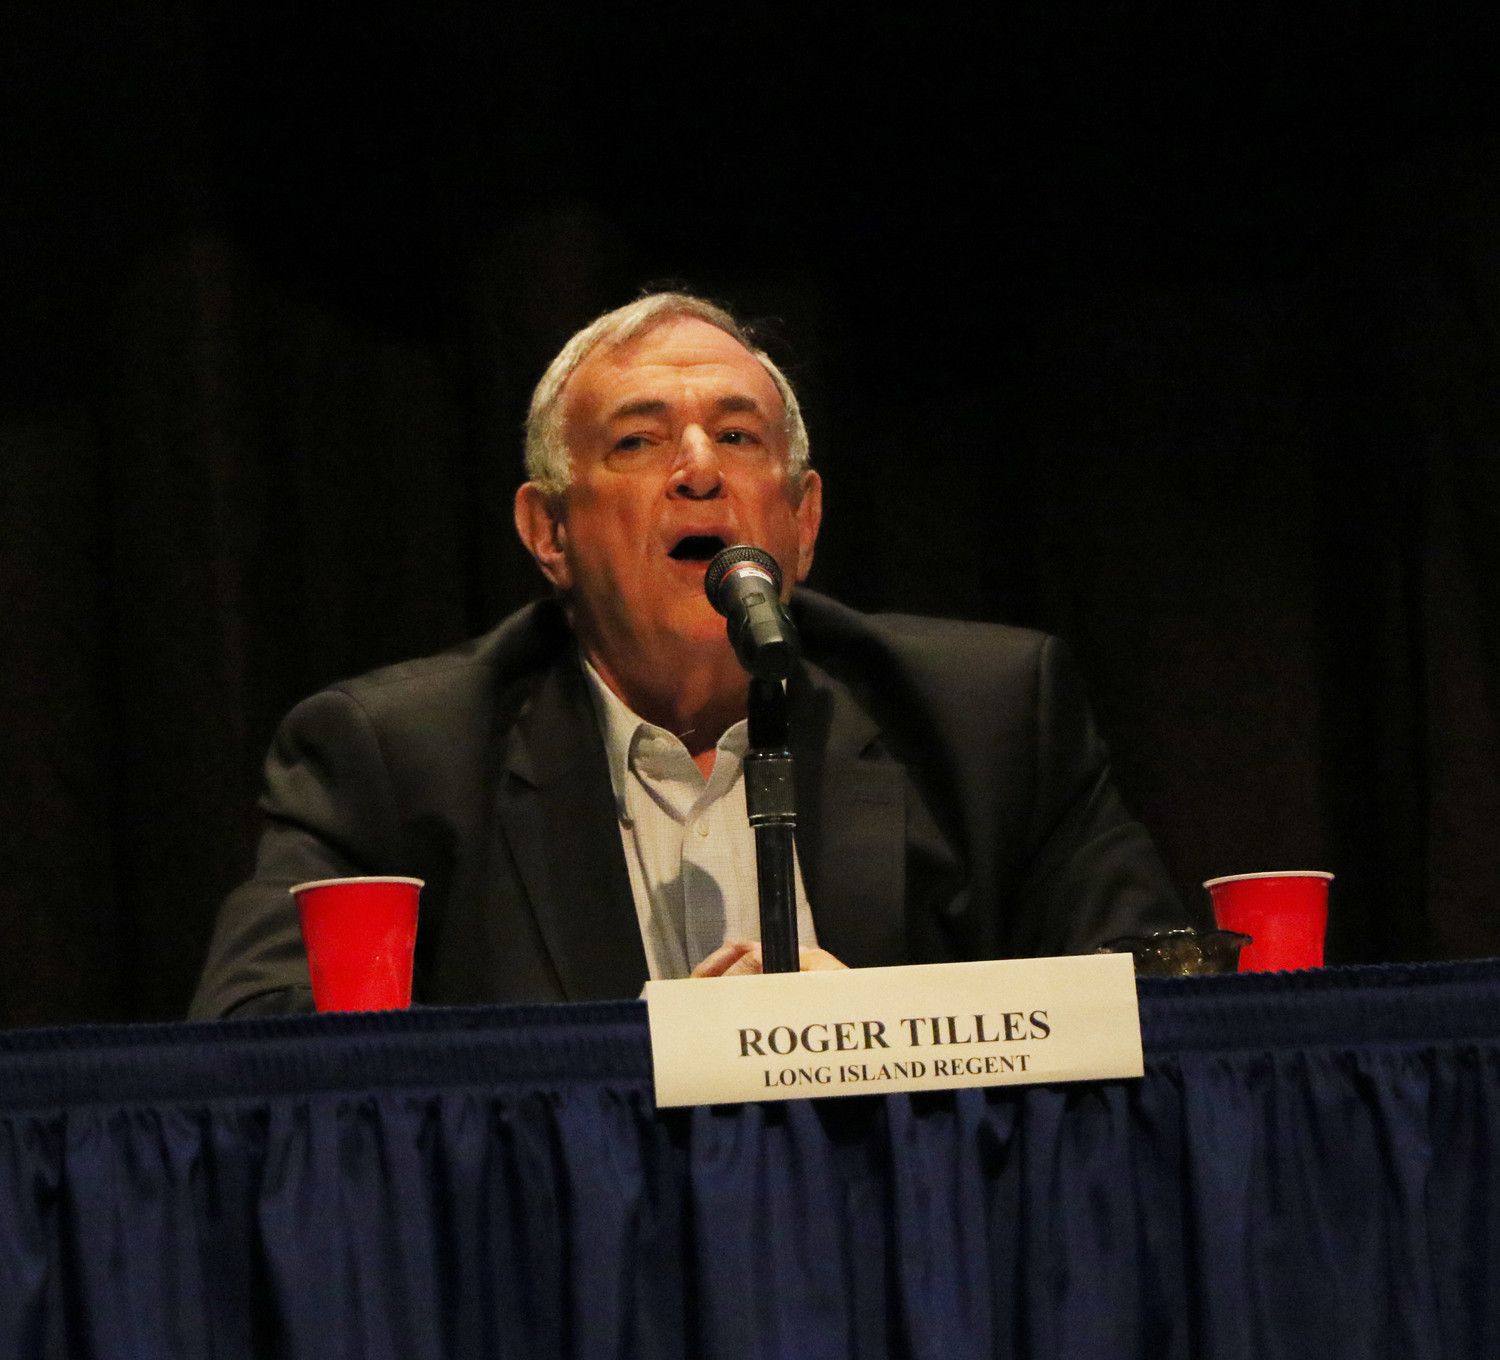 Roger Tilles, of the Long Island Board of Regents spoke to parents at a Rockville Centre High School event in February about diploma options for special needs students.